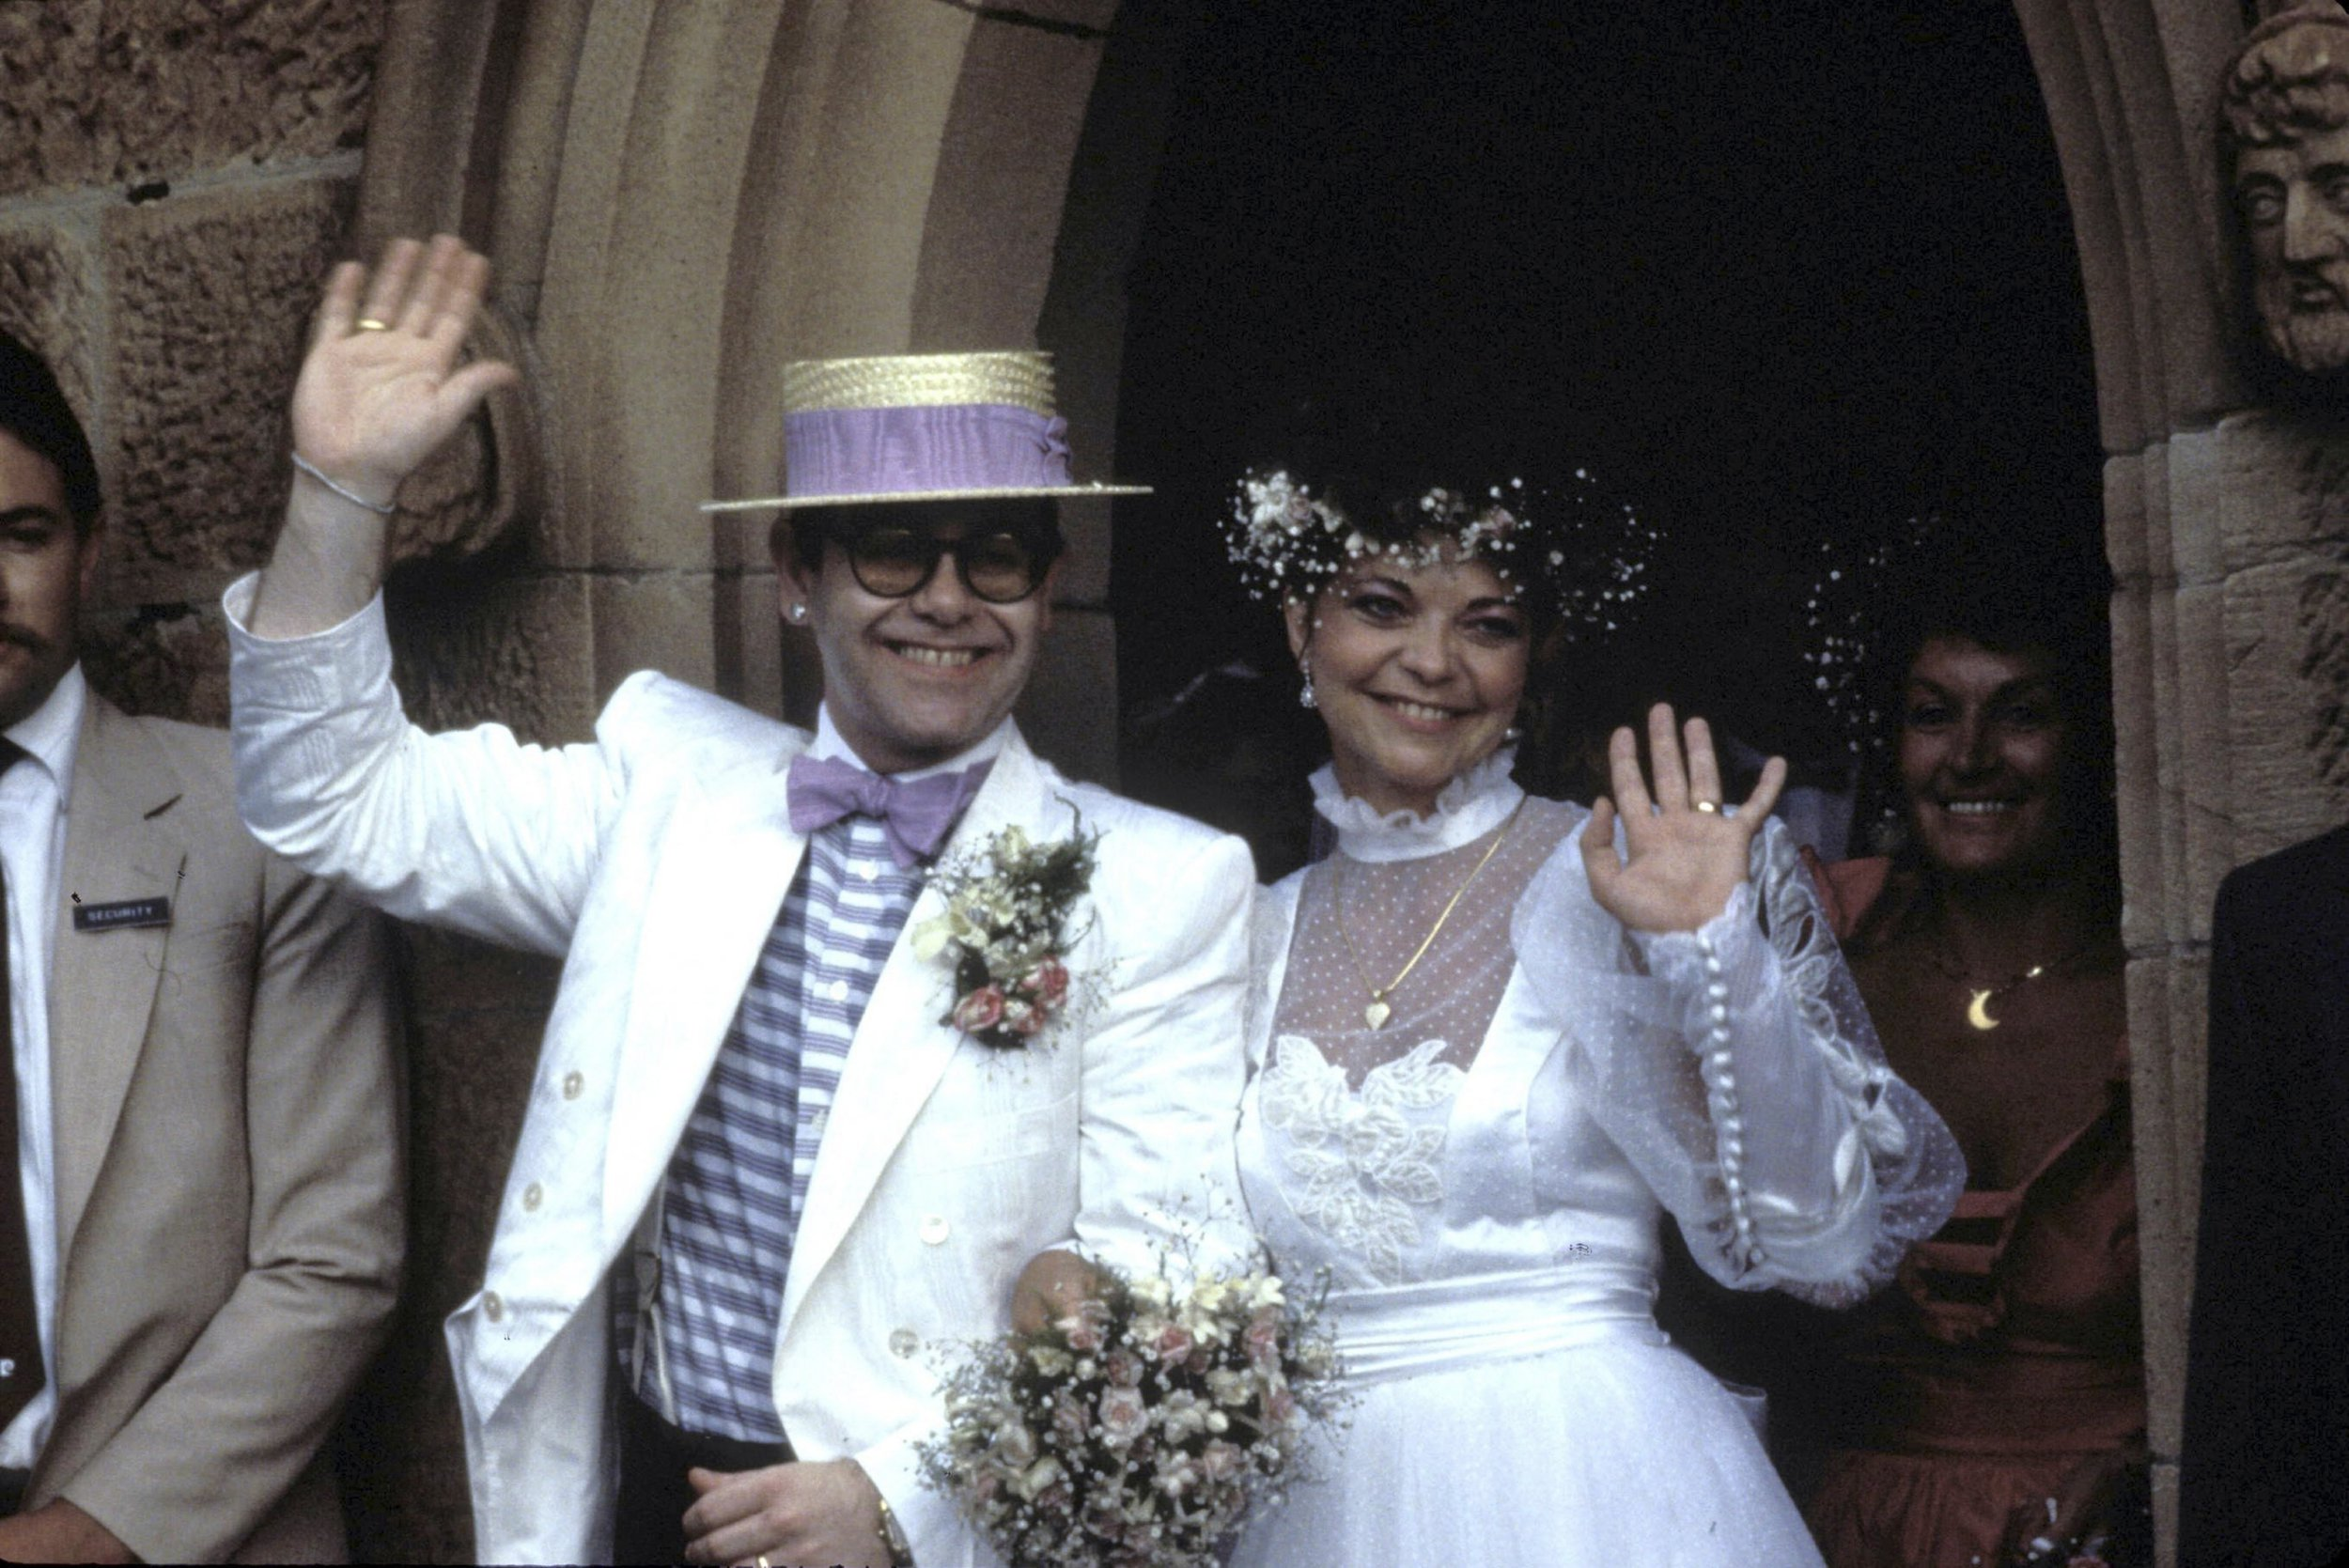 Who is Elton John's wife Renate Blauel and how long were they married?